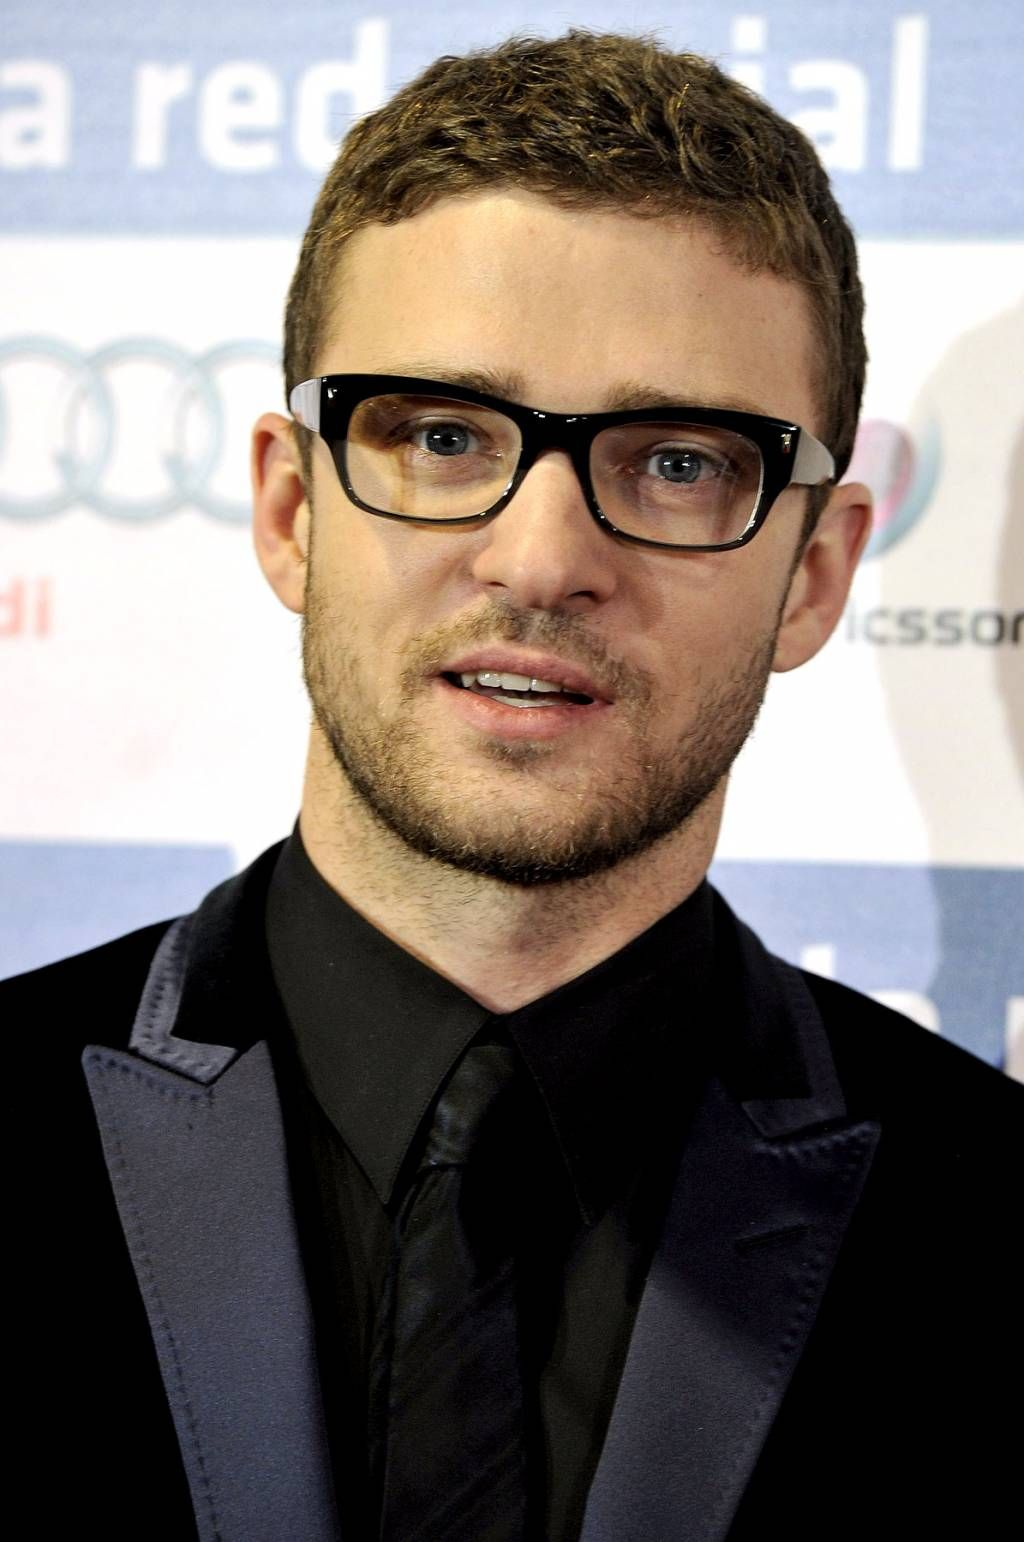 47f2472290 Justin Timberlake! Follow us on FB or find us on the web    eyecarefortcollins.com